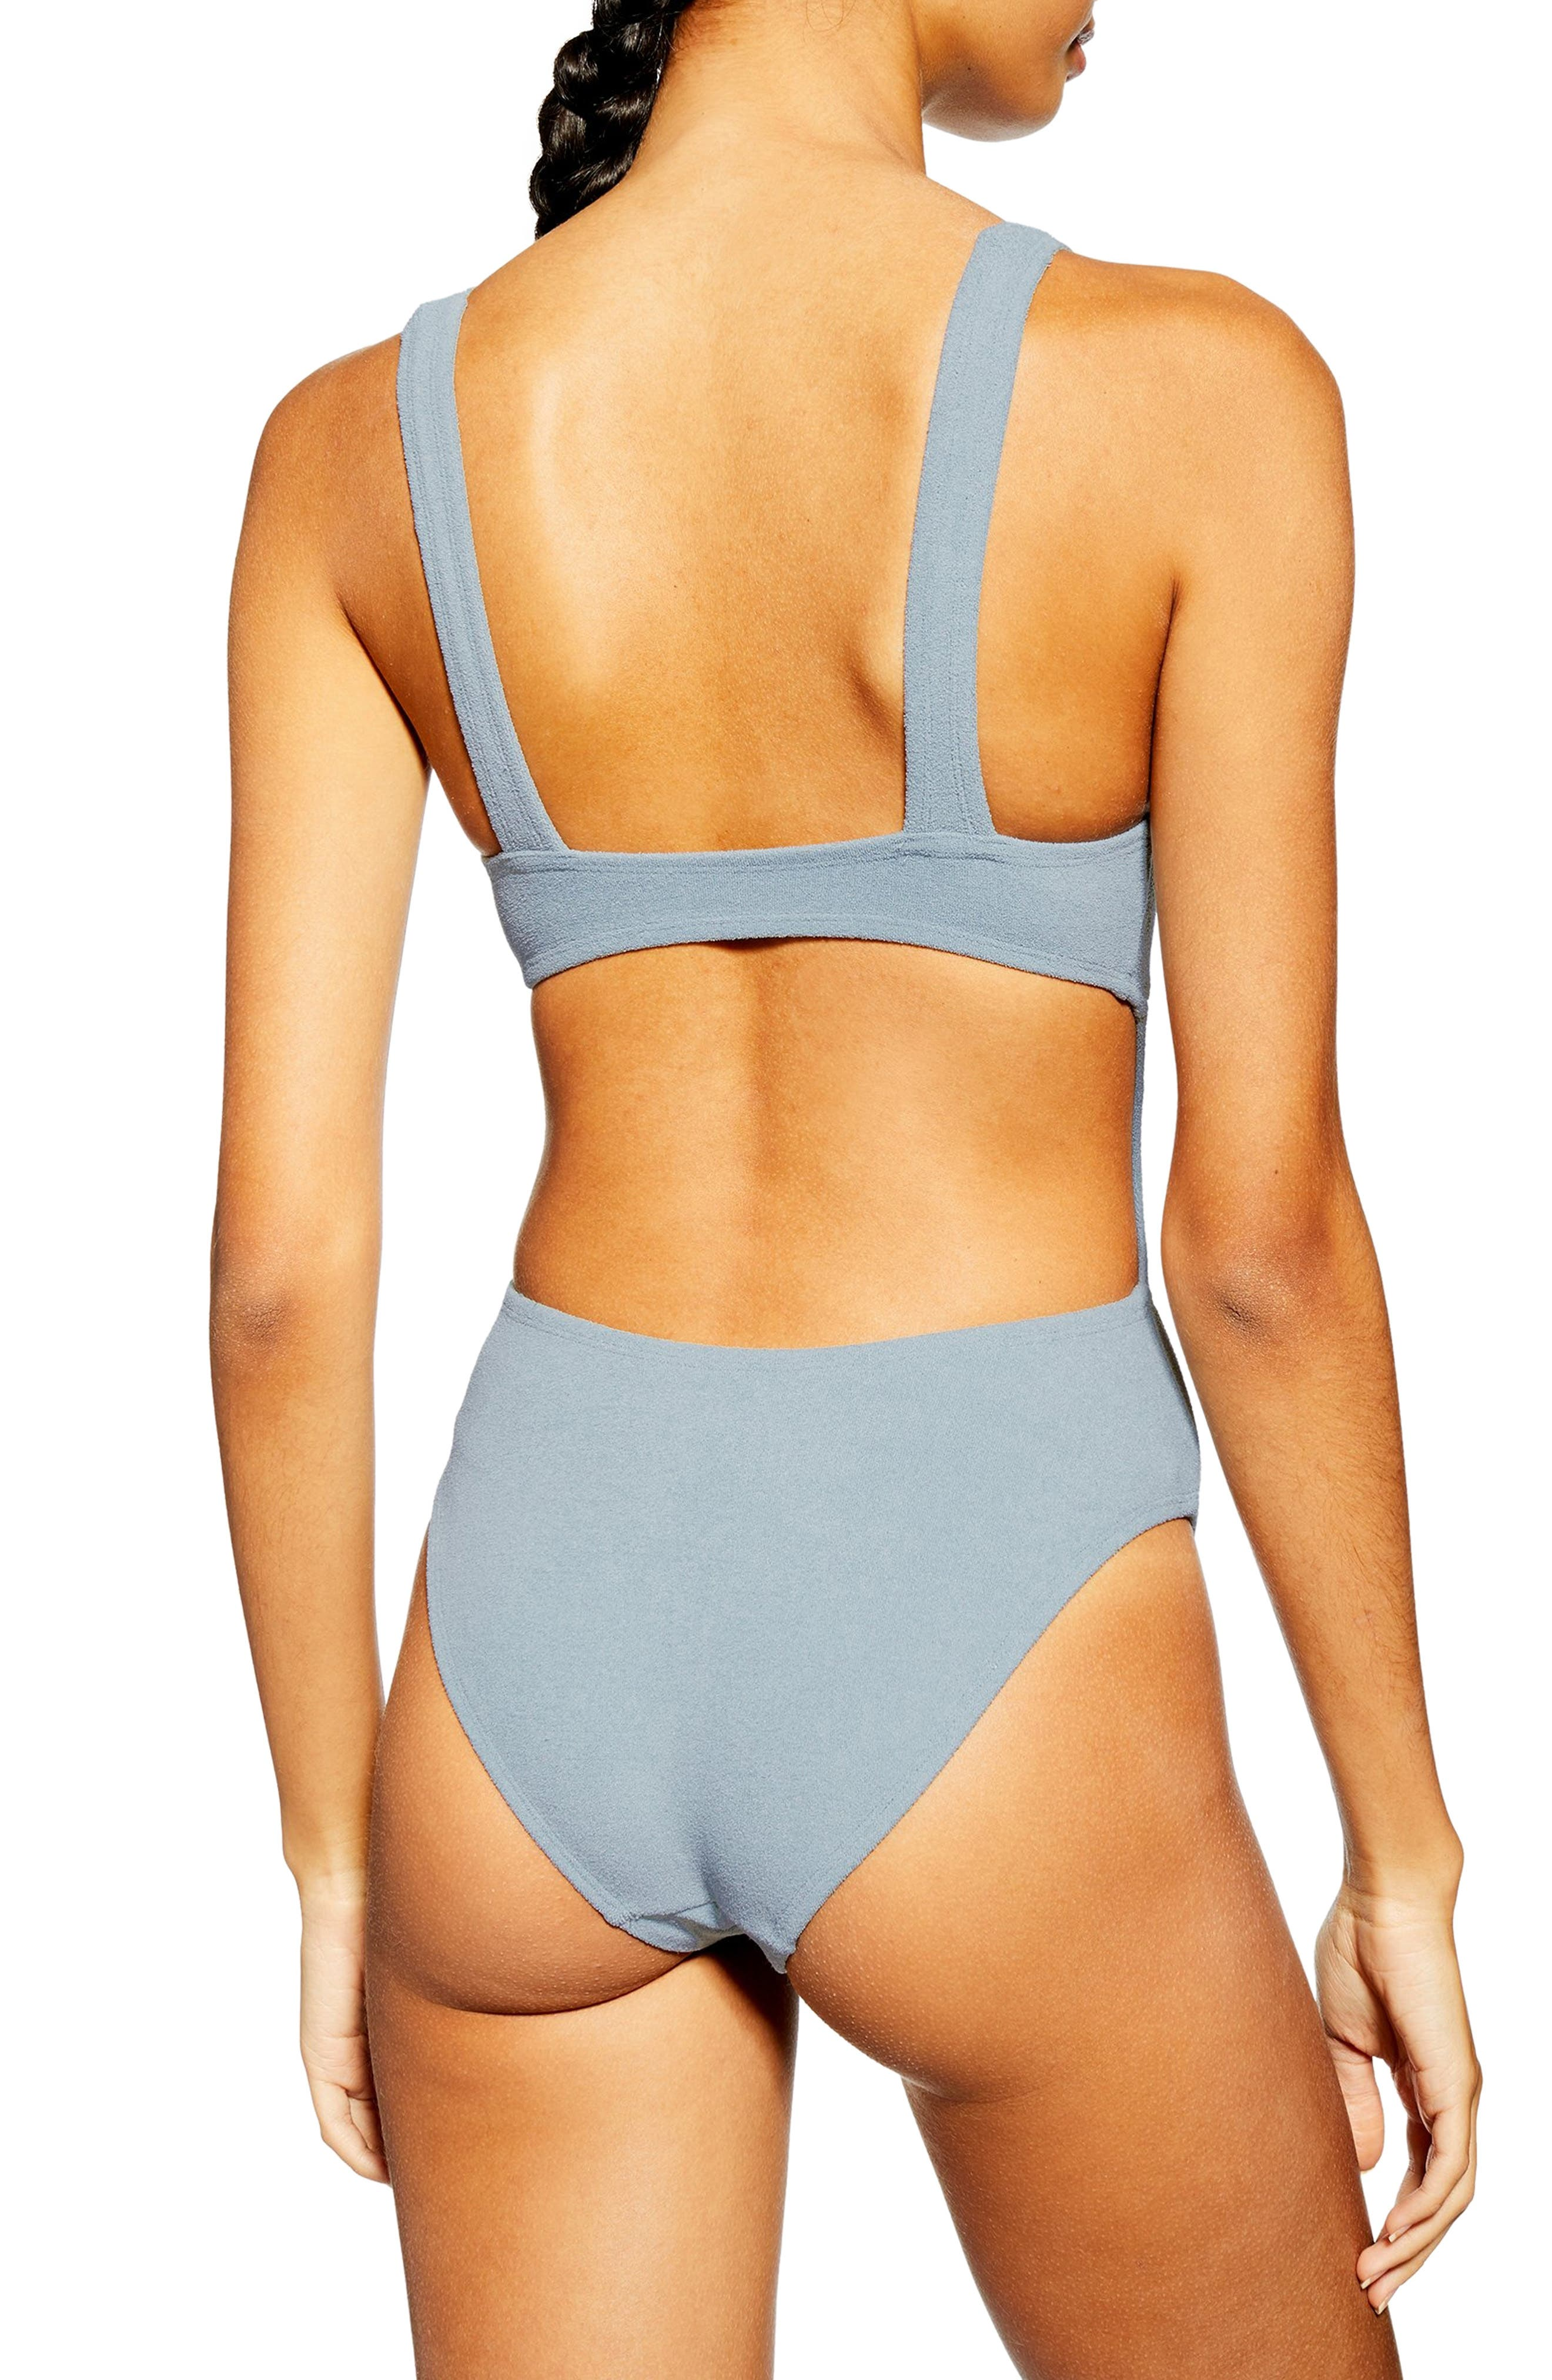 TOPSHOP, Knot Velour One-Piece Swimsuit, Alternate thumbnail 2, color, GREY